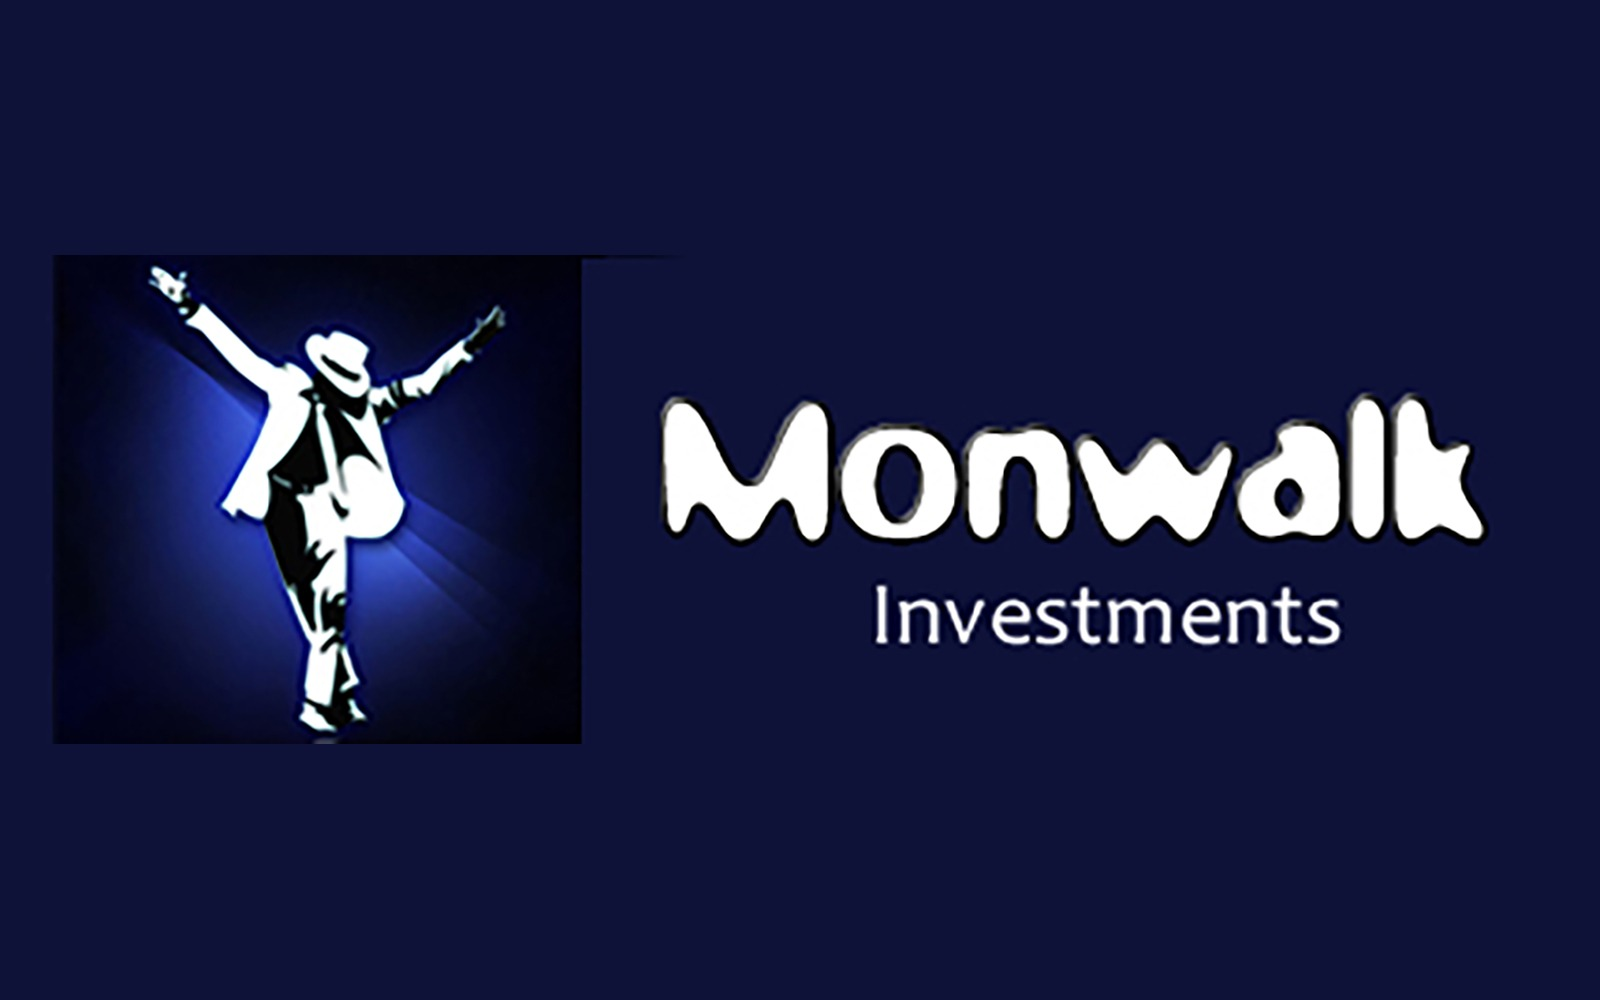 Moonwalk Investments